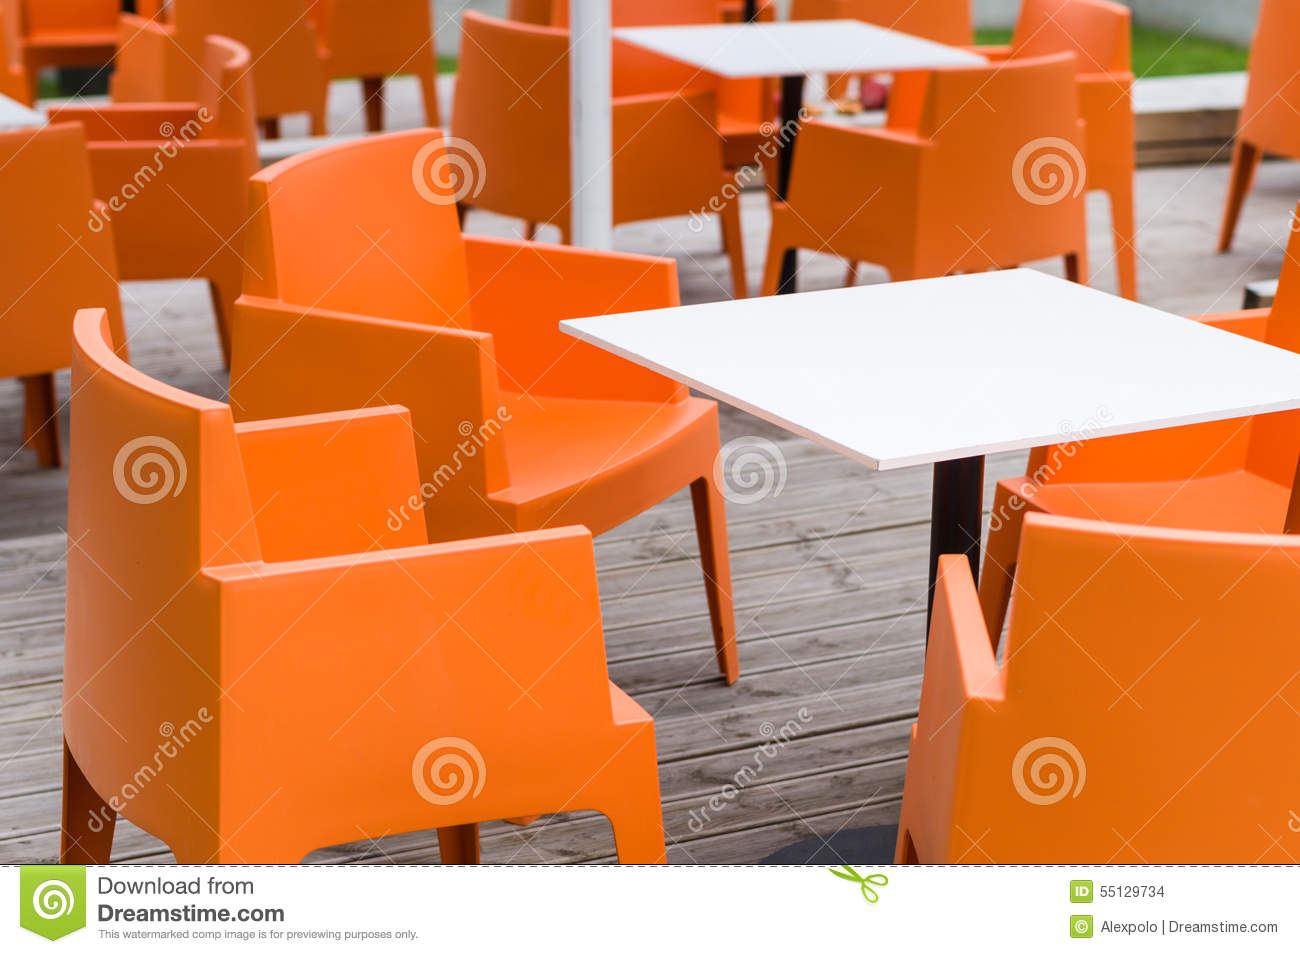 Modern cafe chairs and tables - Modern Furniture Outdoor Cafe Terrace With Orange Chairs